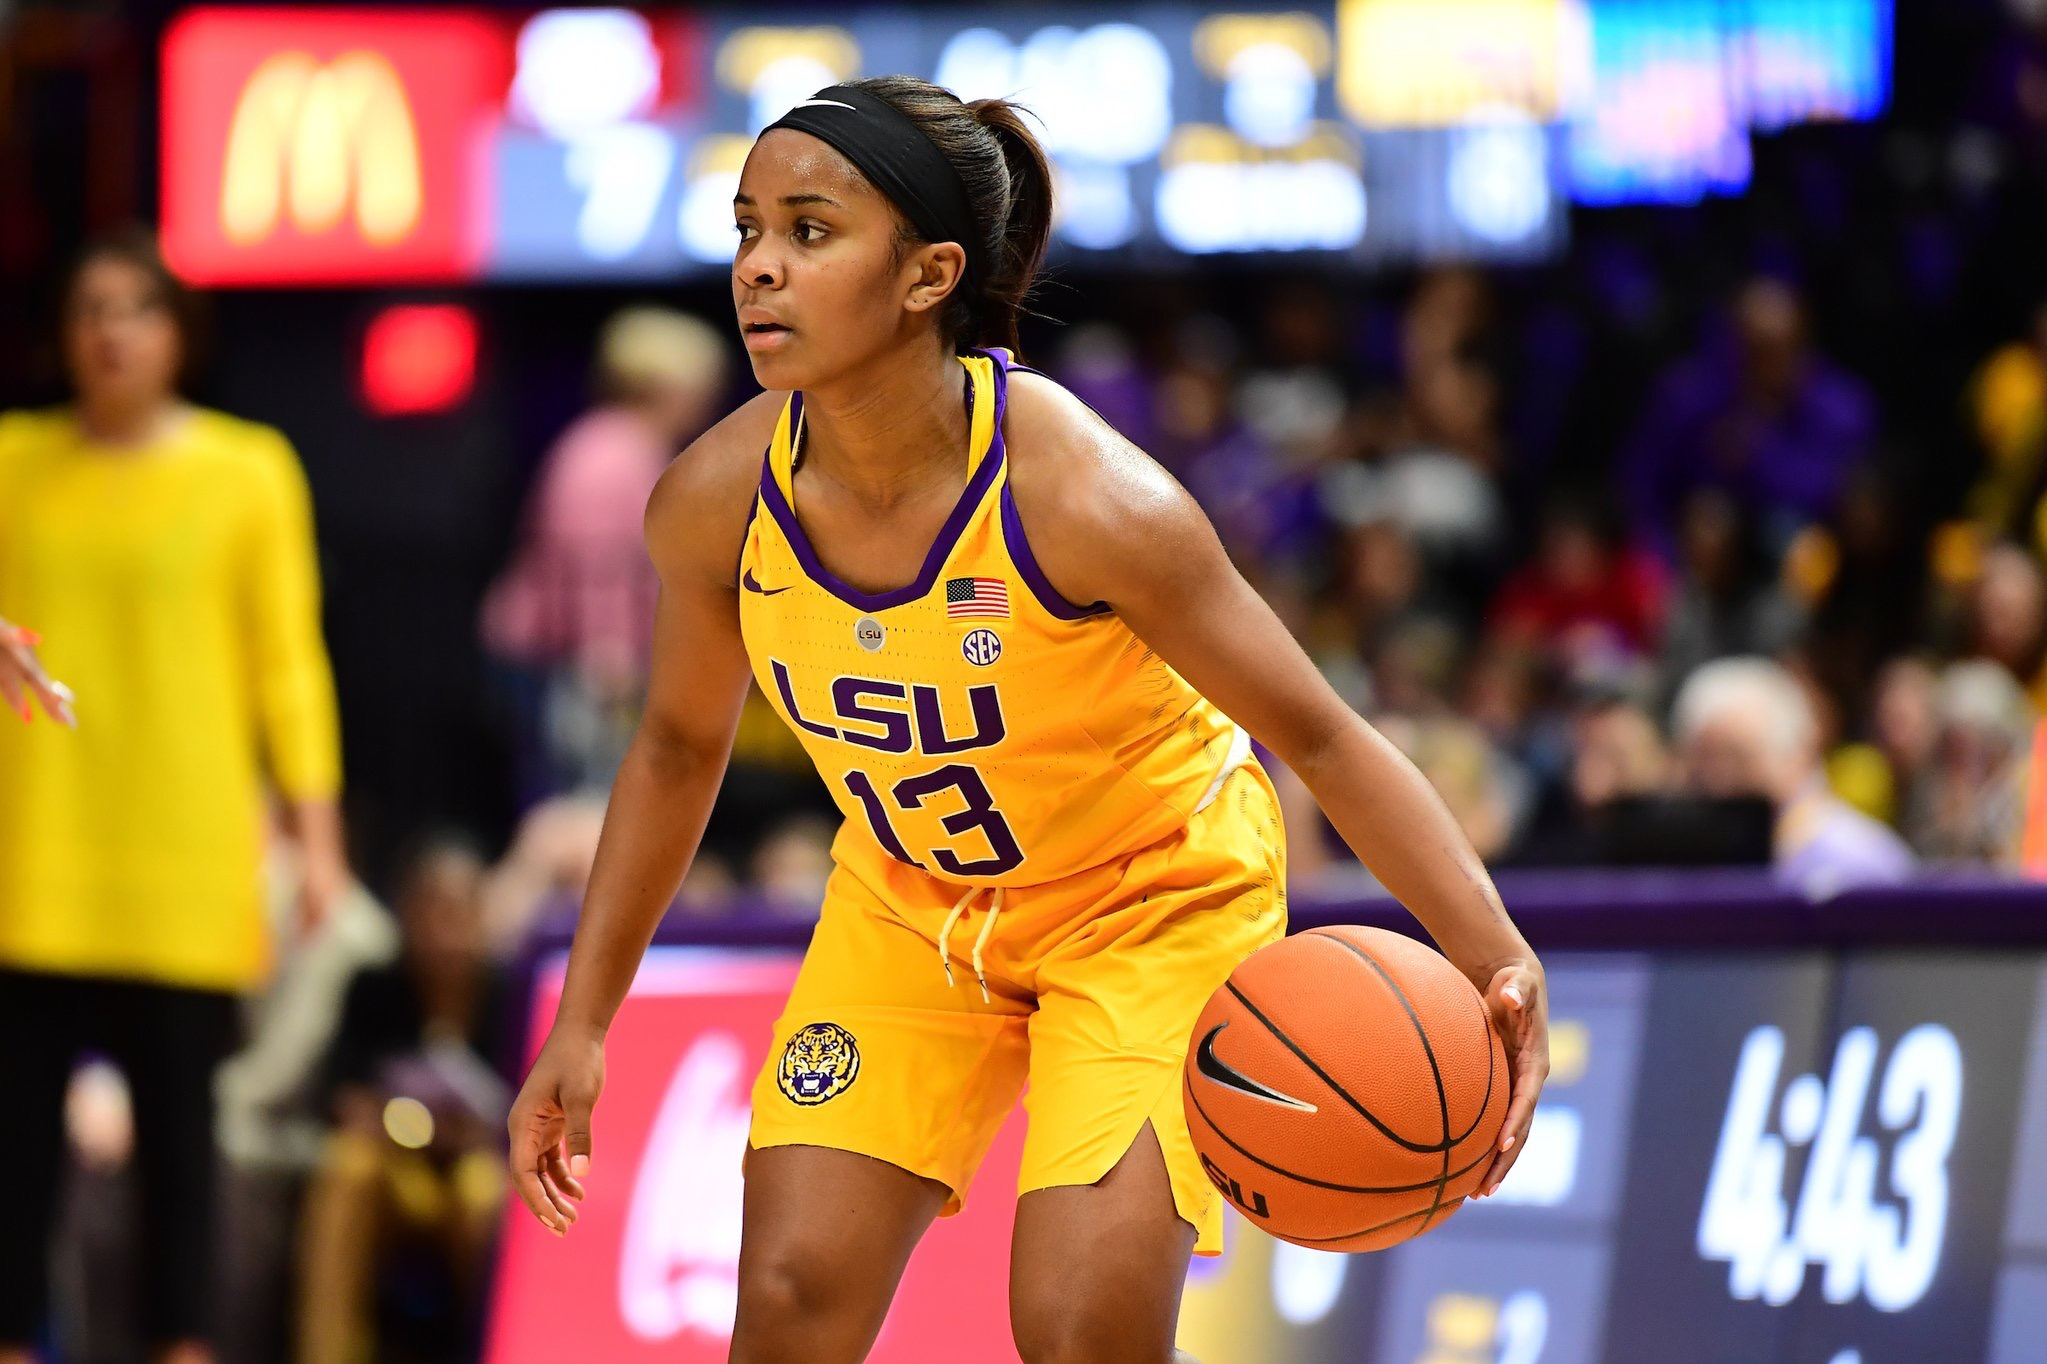 Lady Tigers take down No. 21 Texas A&M, 63-52